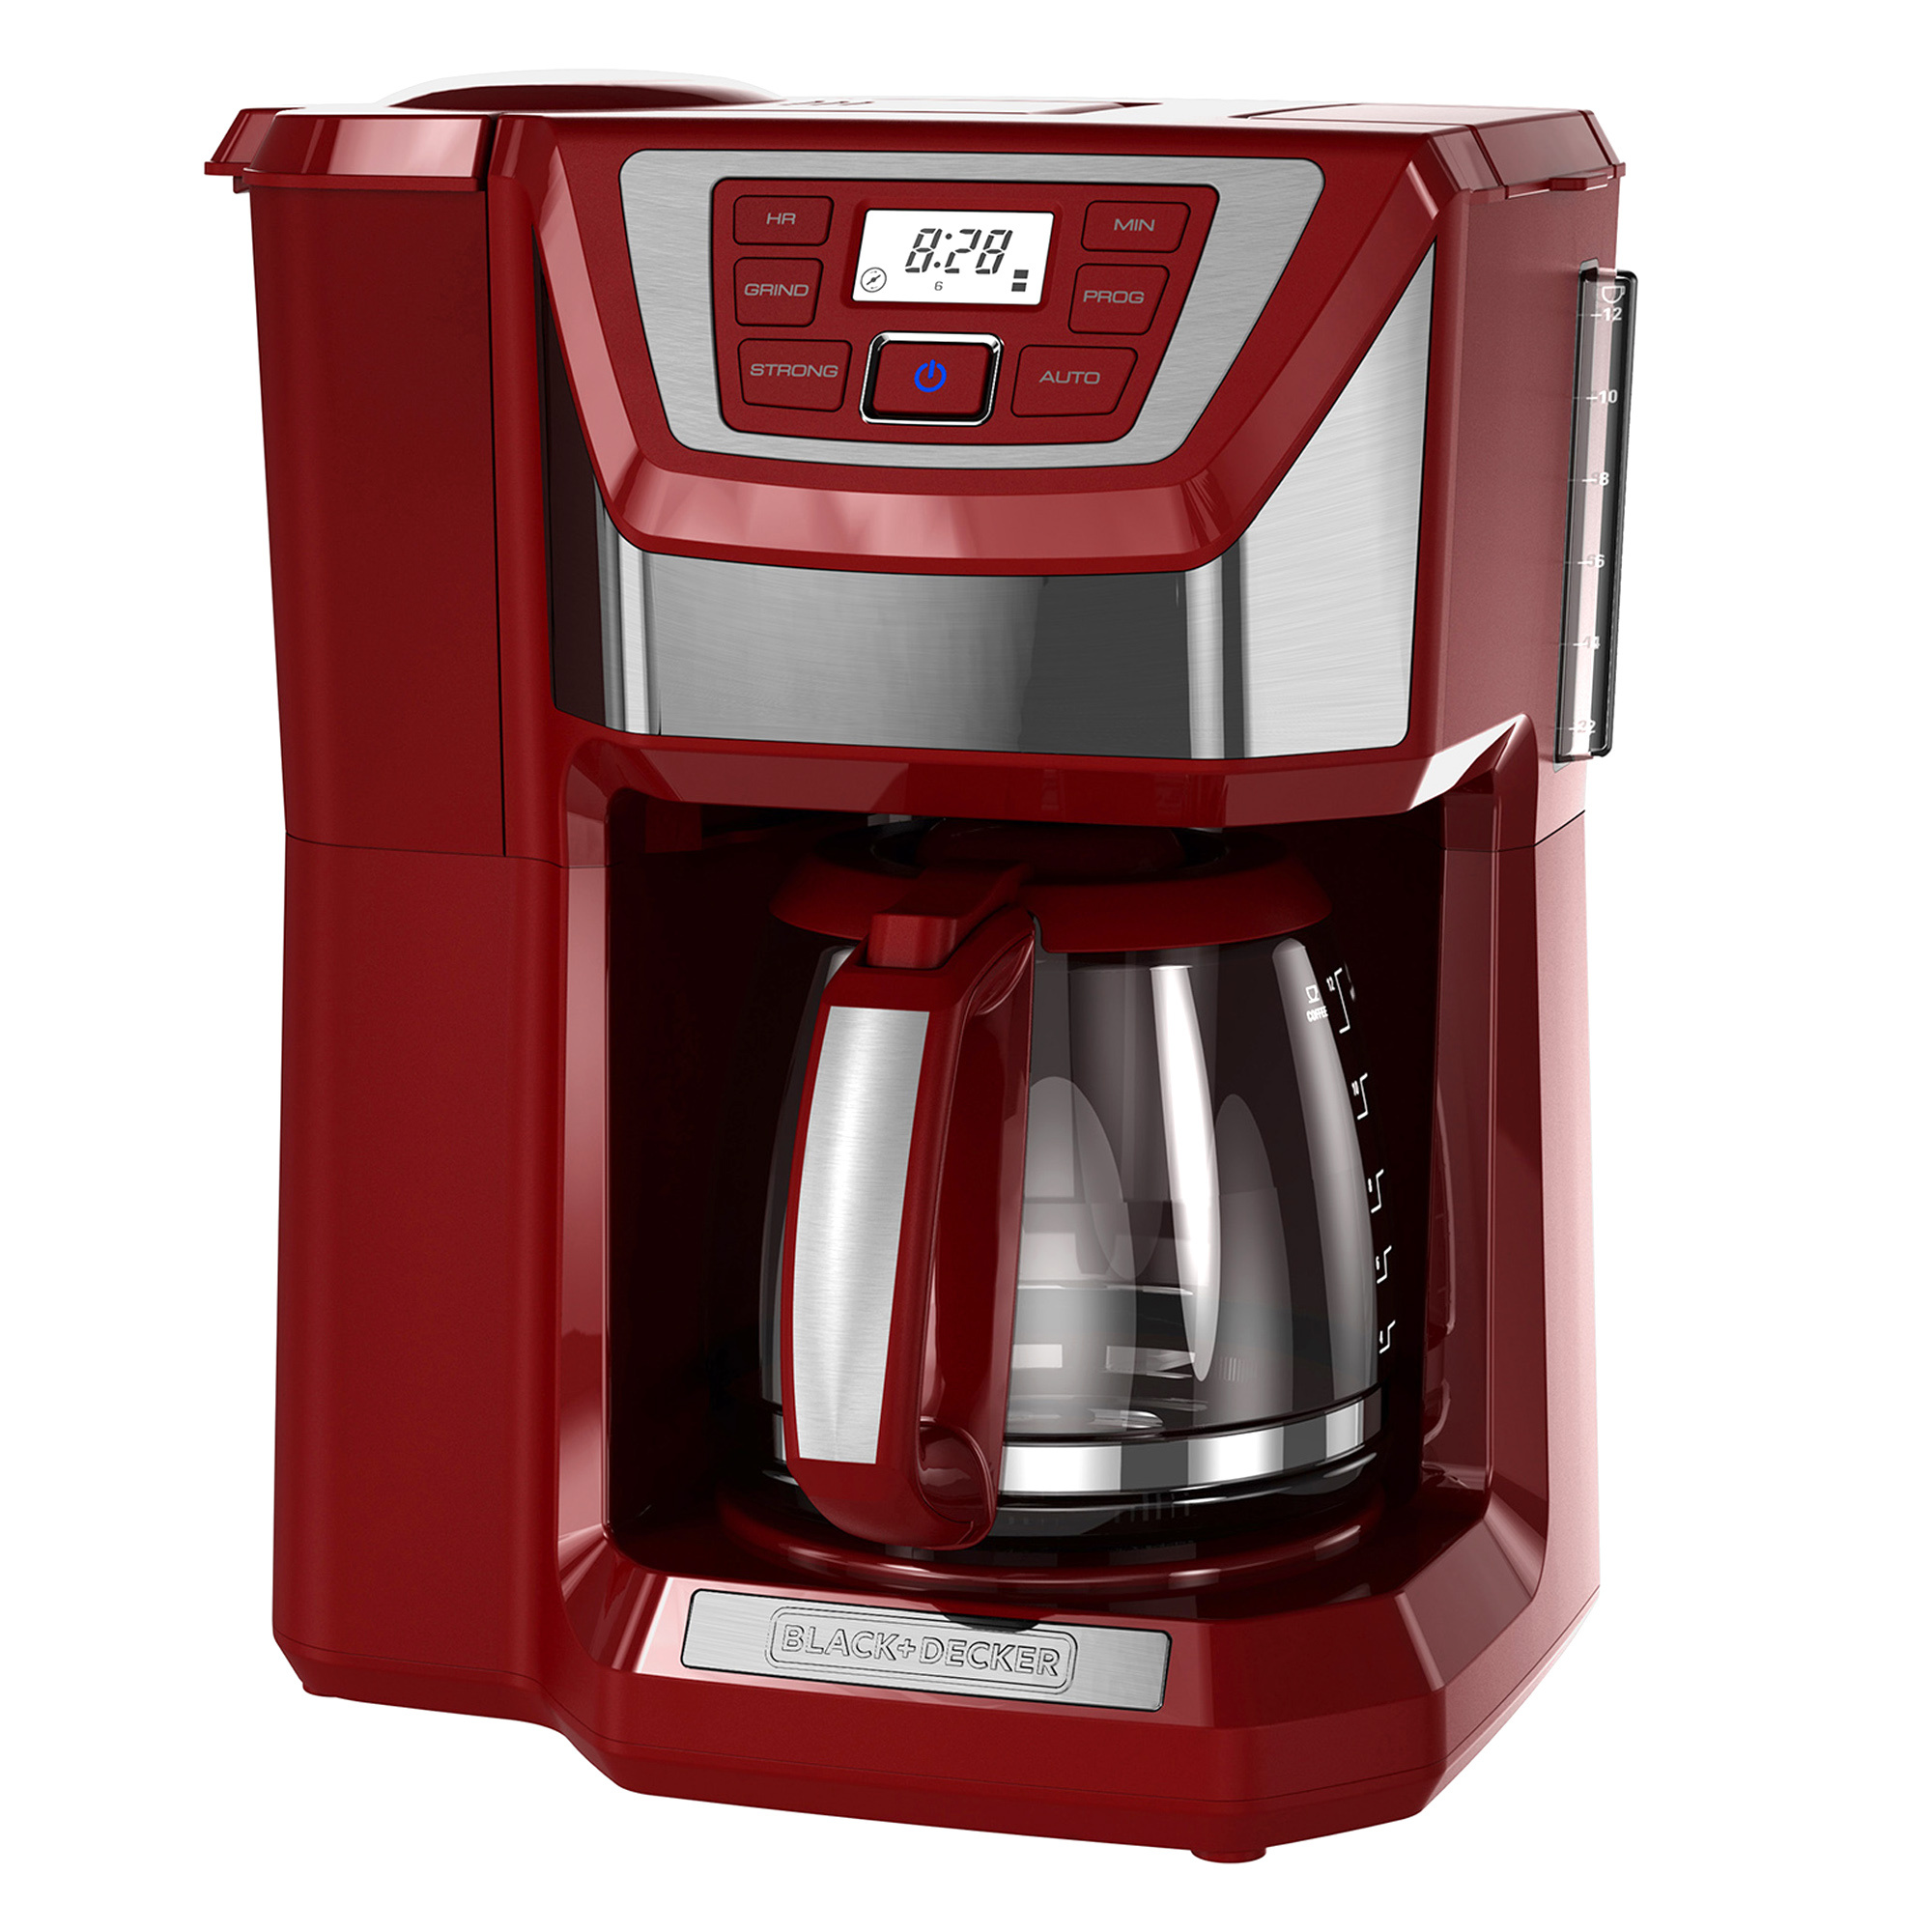 Black and decker coffee maker 12 cup programmable - Black Decker Mill And Brew 12 Cup Programmable